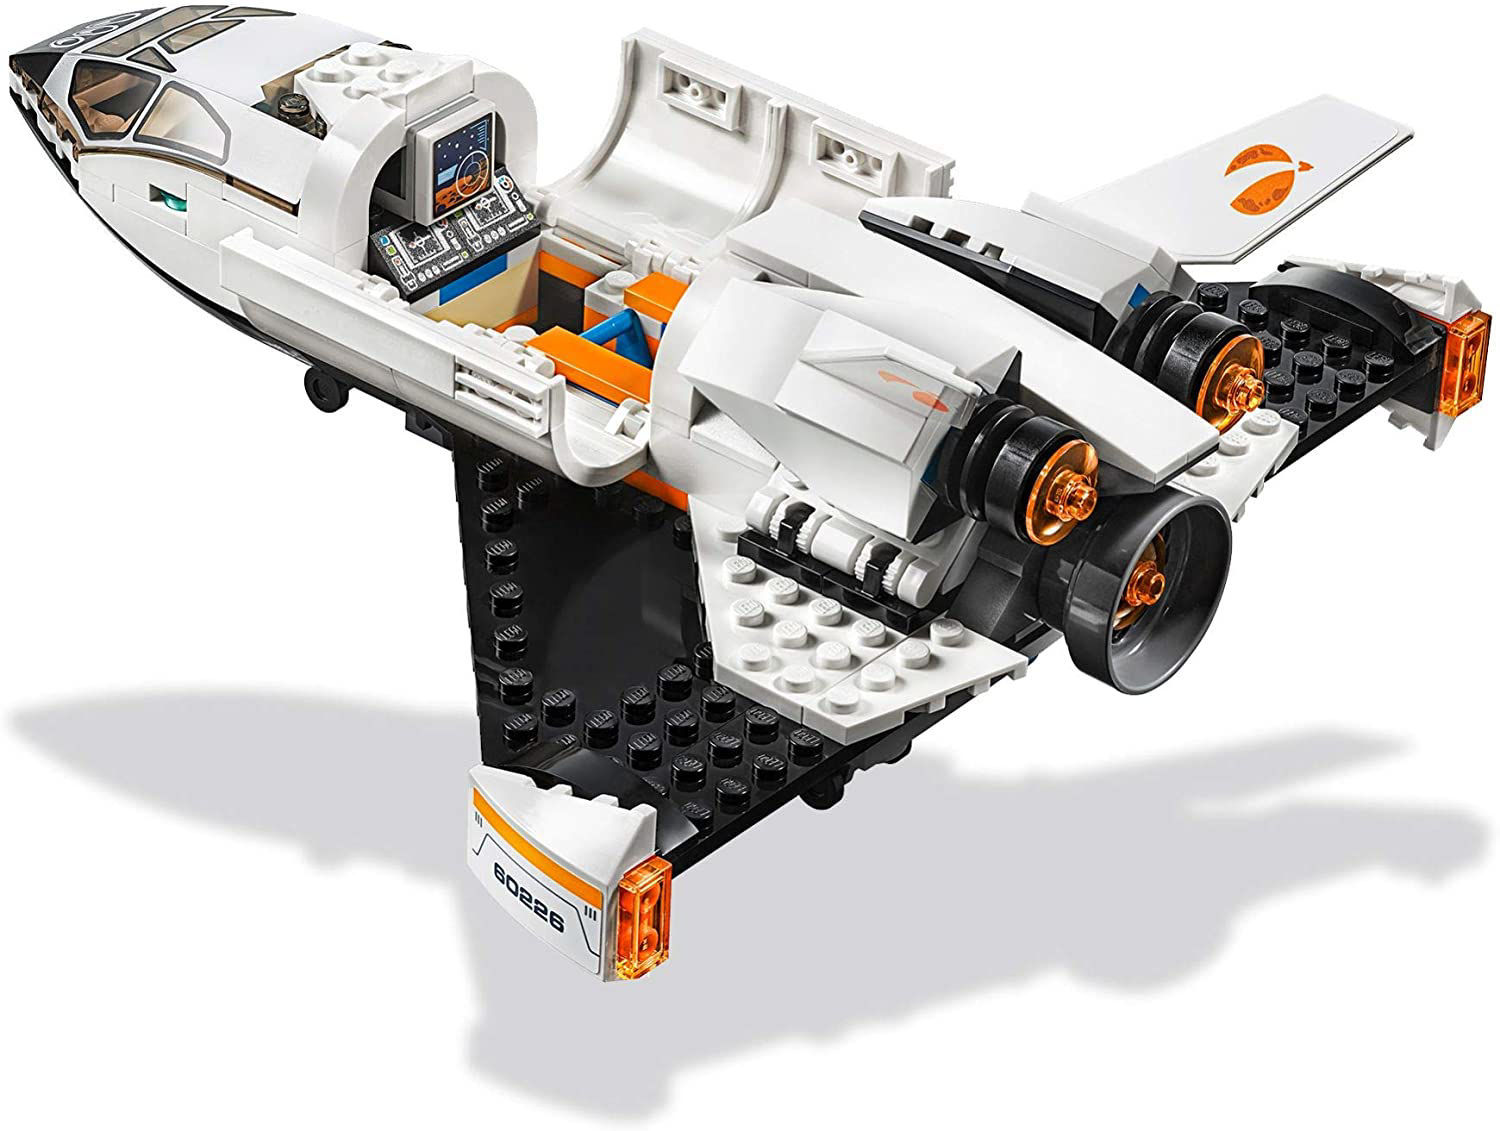 Picture of Mars Research Shuttle